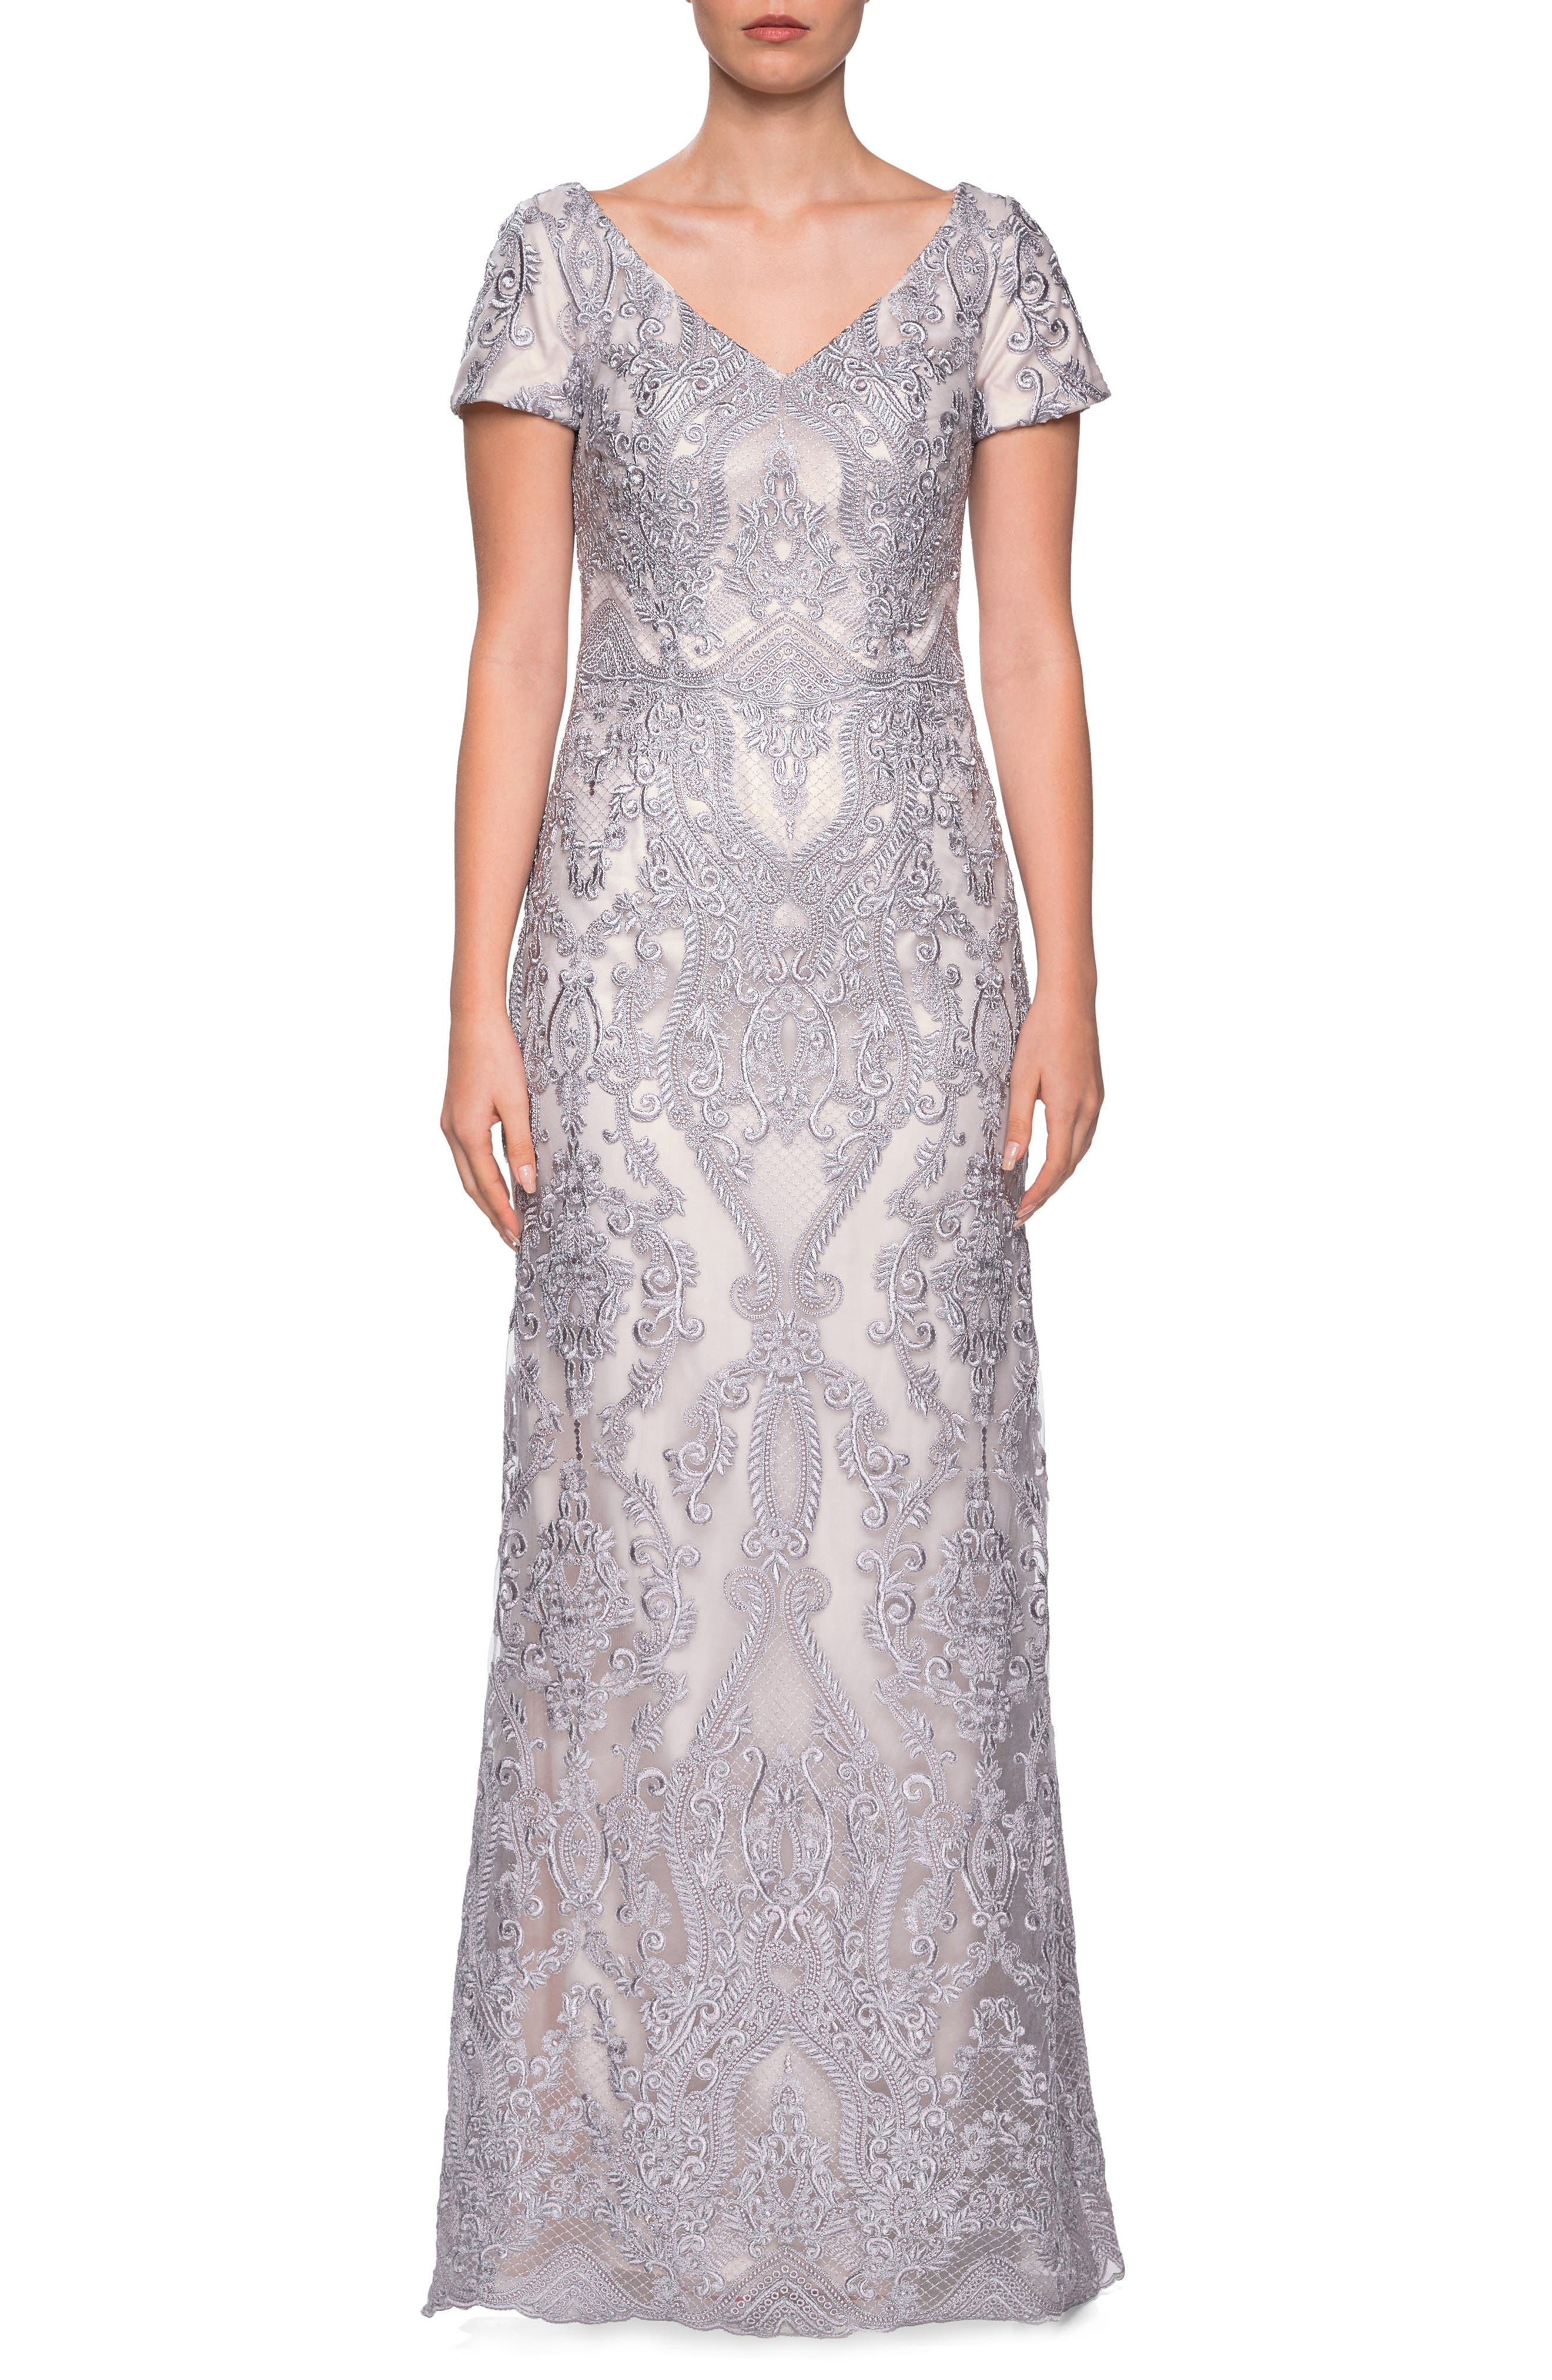 La Femme Embroidered Lace Column Dress, Grey